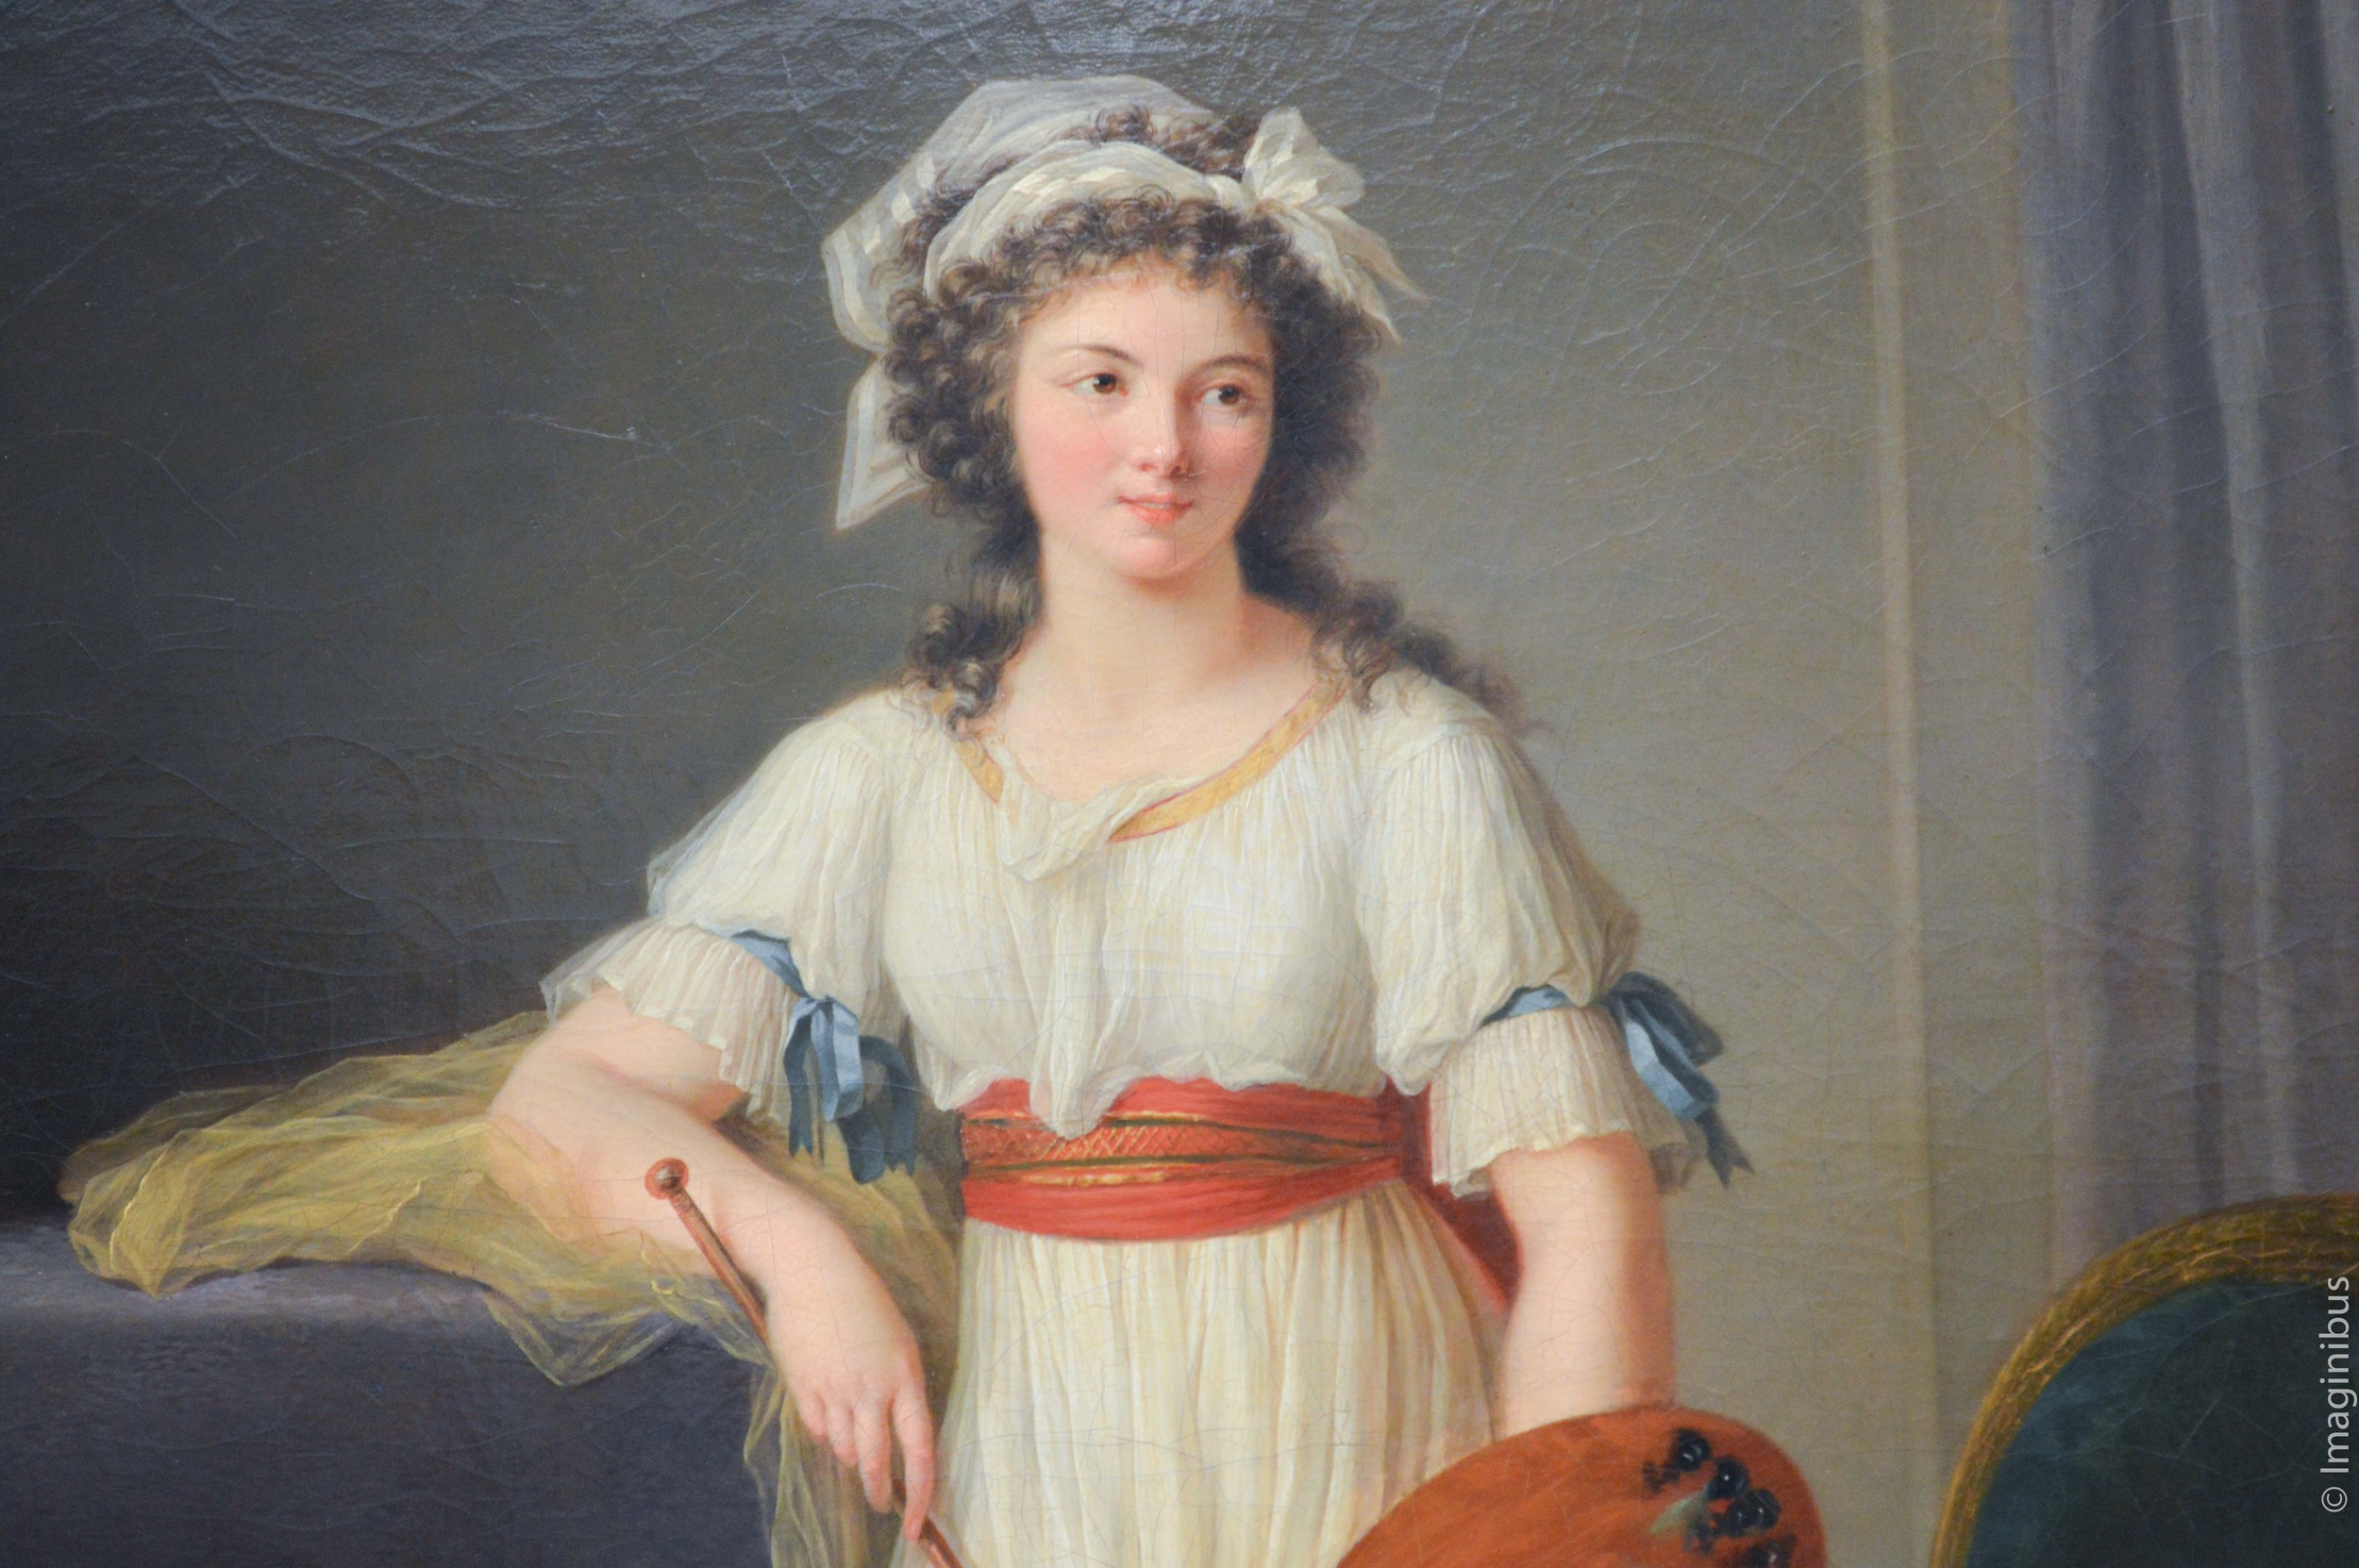 Woman Bows, French Painting, The Met